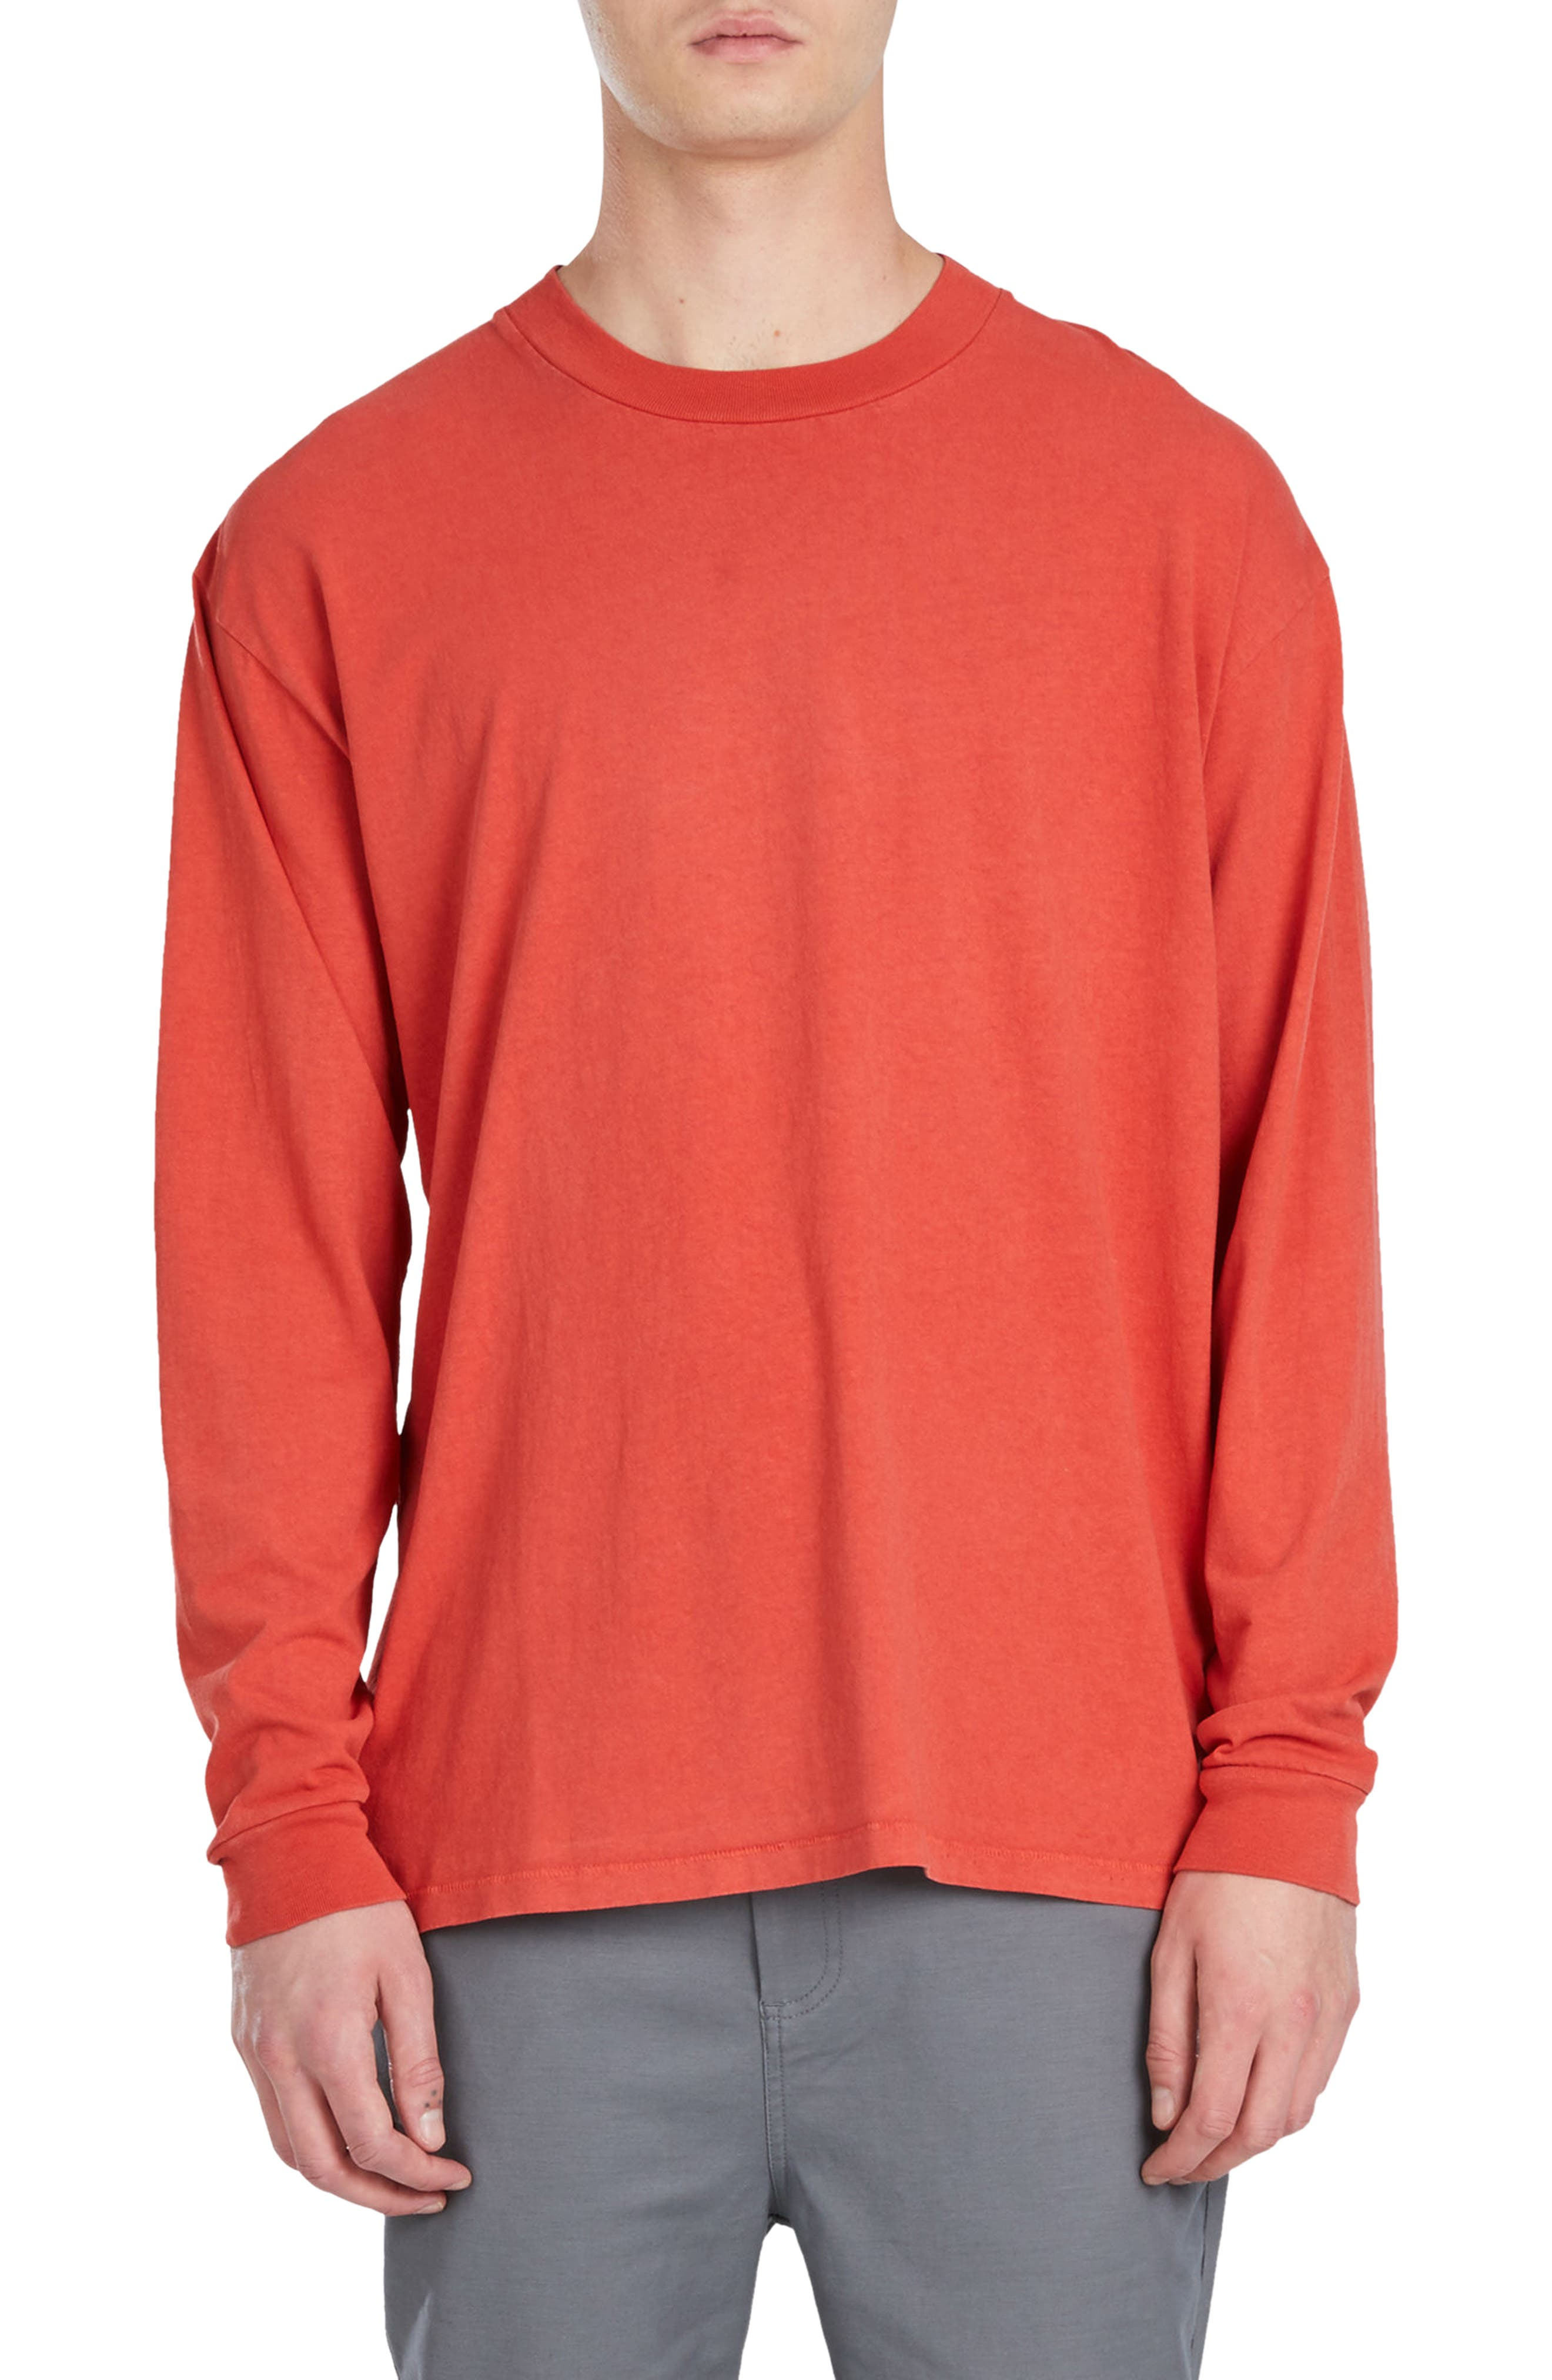 Main Image - ZANEROBE Boxy Long Sleeve T-Shirt